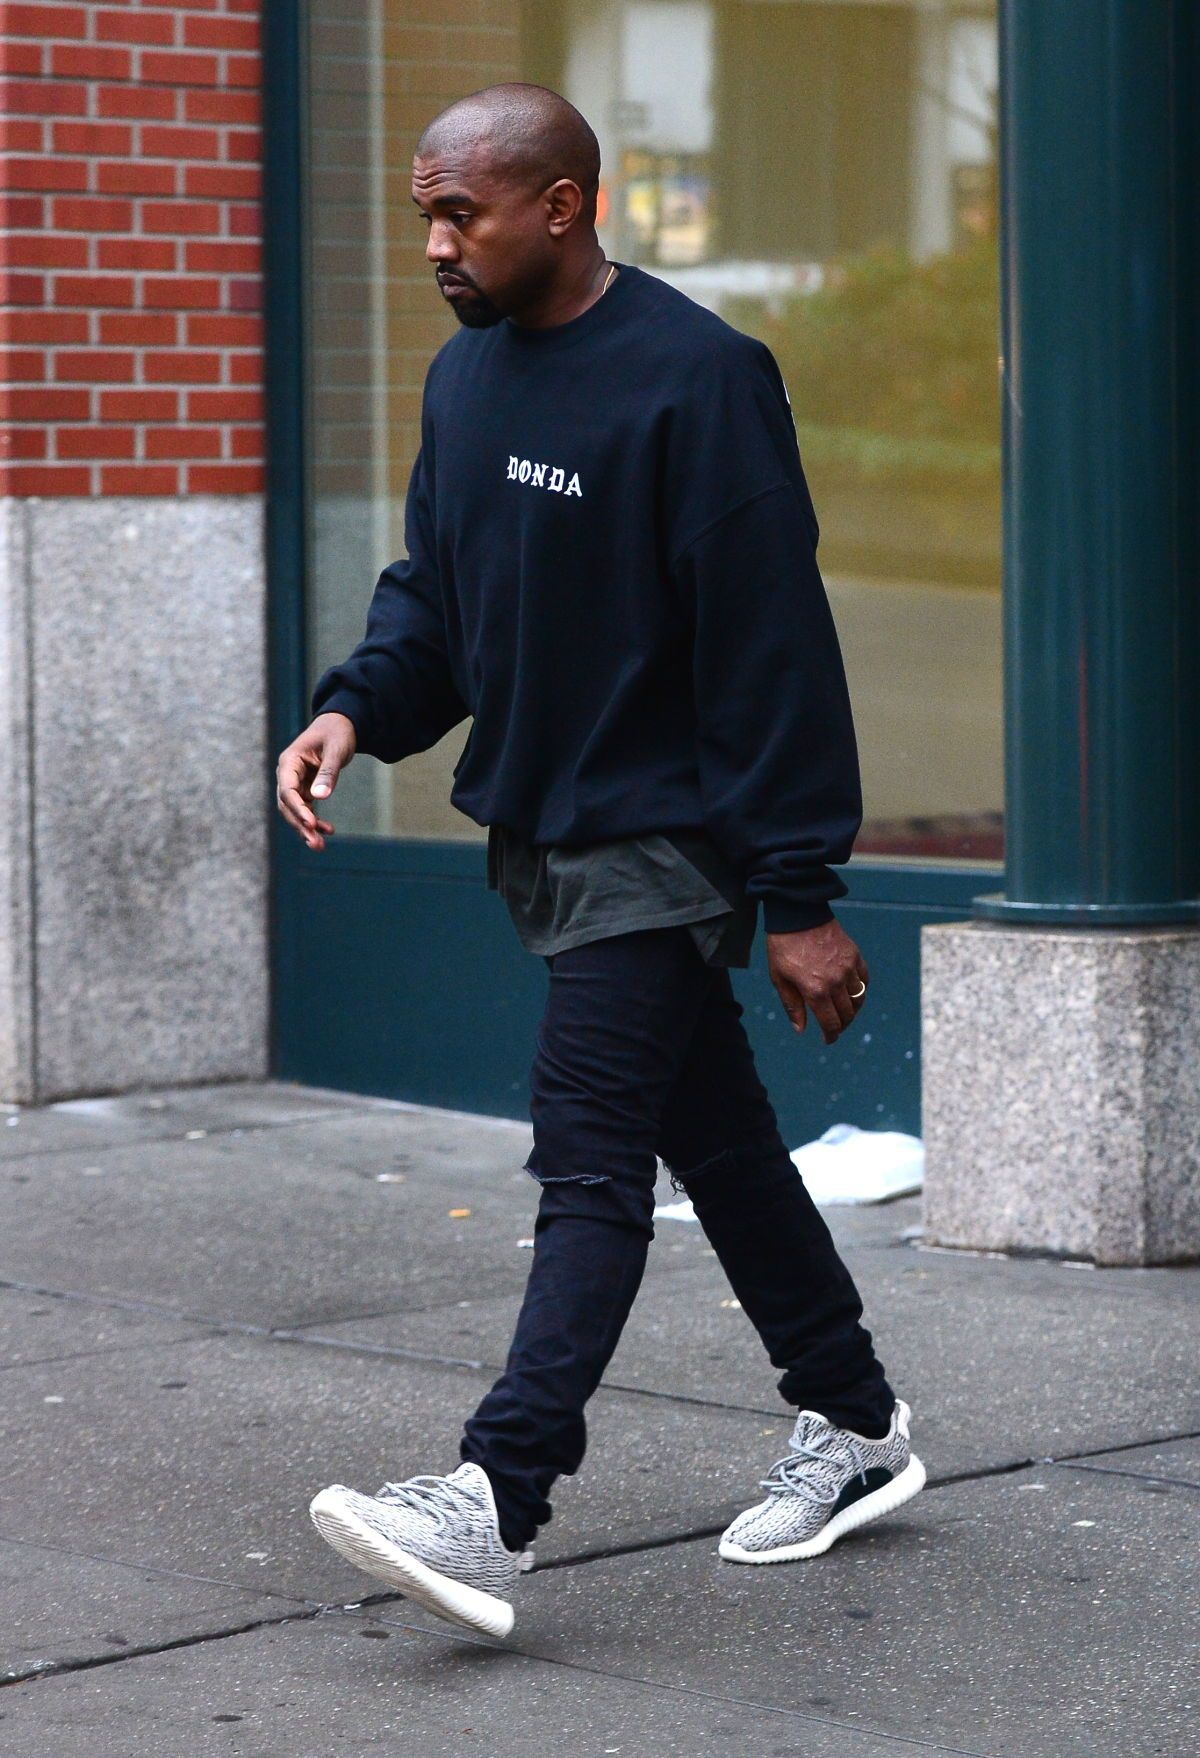 buy popular 1a87c 5016f mtvstyle:let's all freak out over the new yeezy boost 350 ...